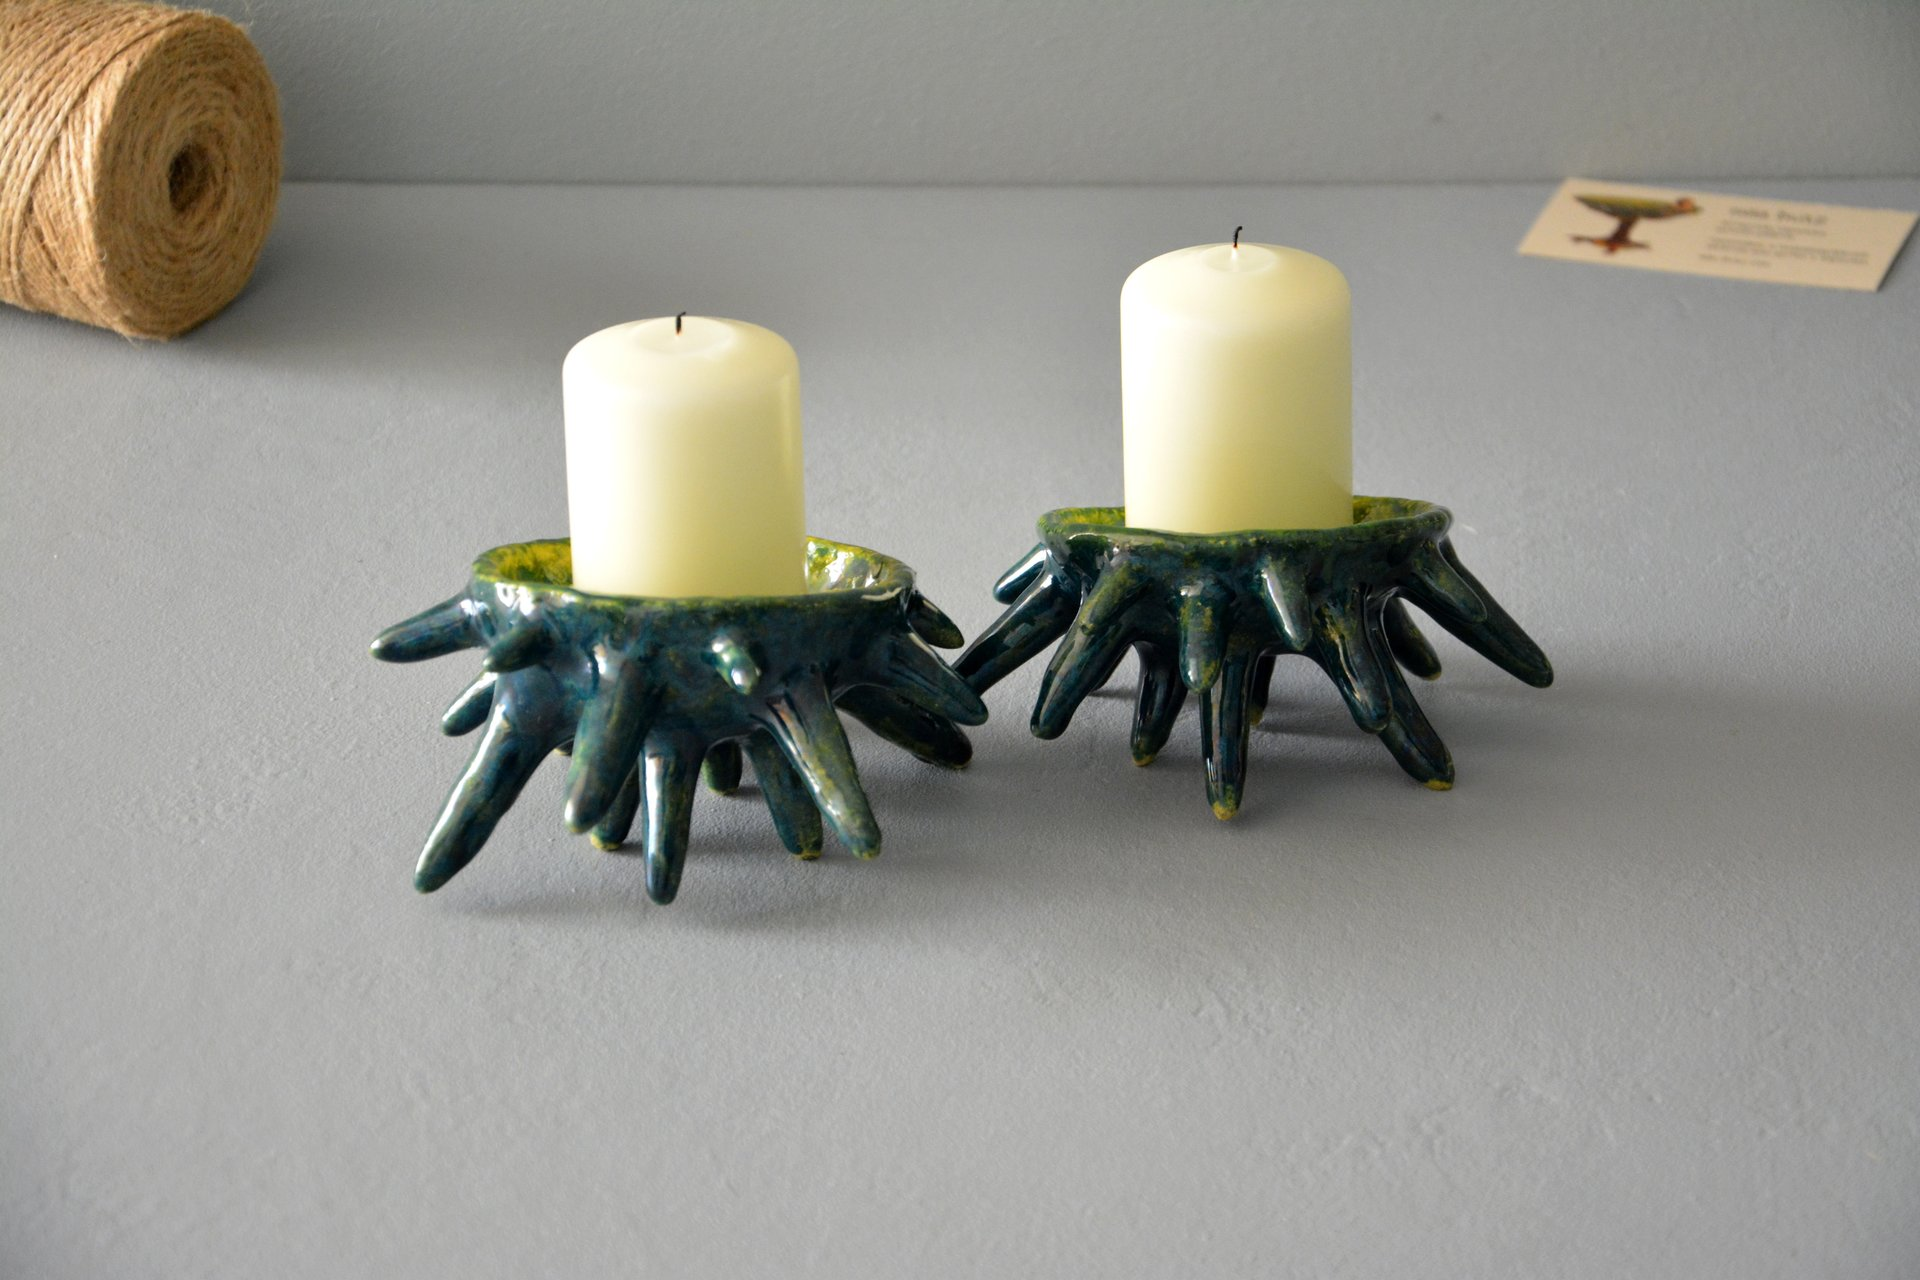 Spikes - Ceramic Candl-holders, diameter - 10 cm, photo 5 of 7.